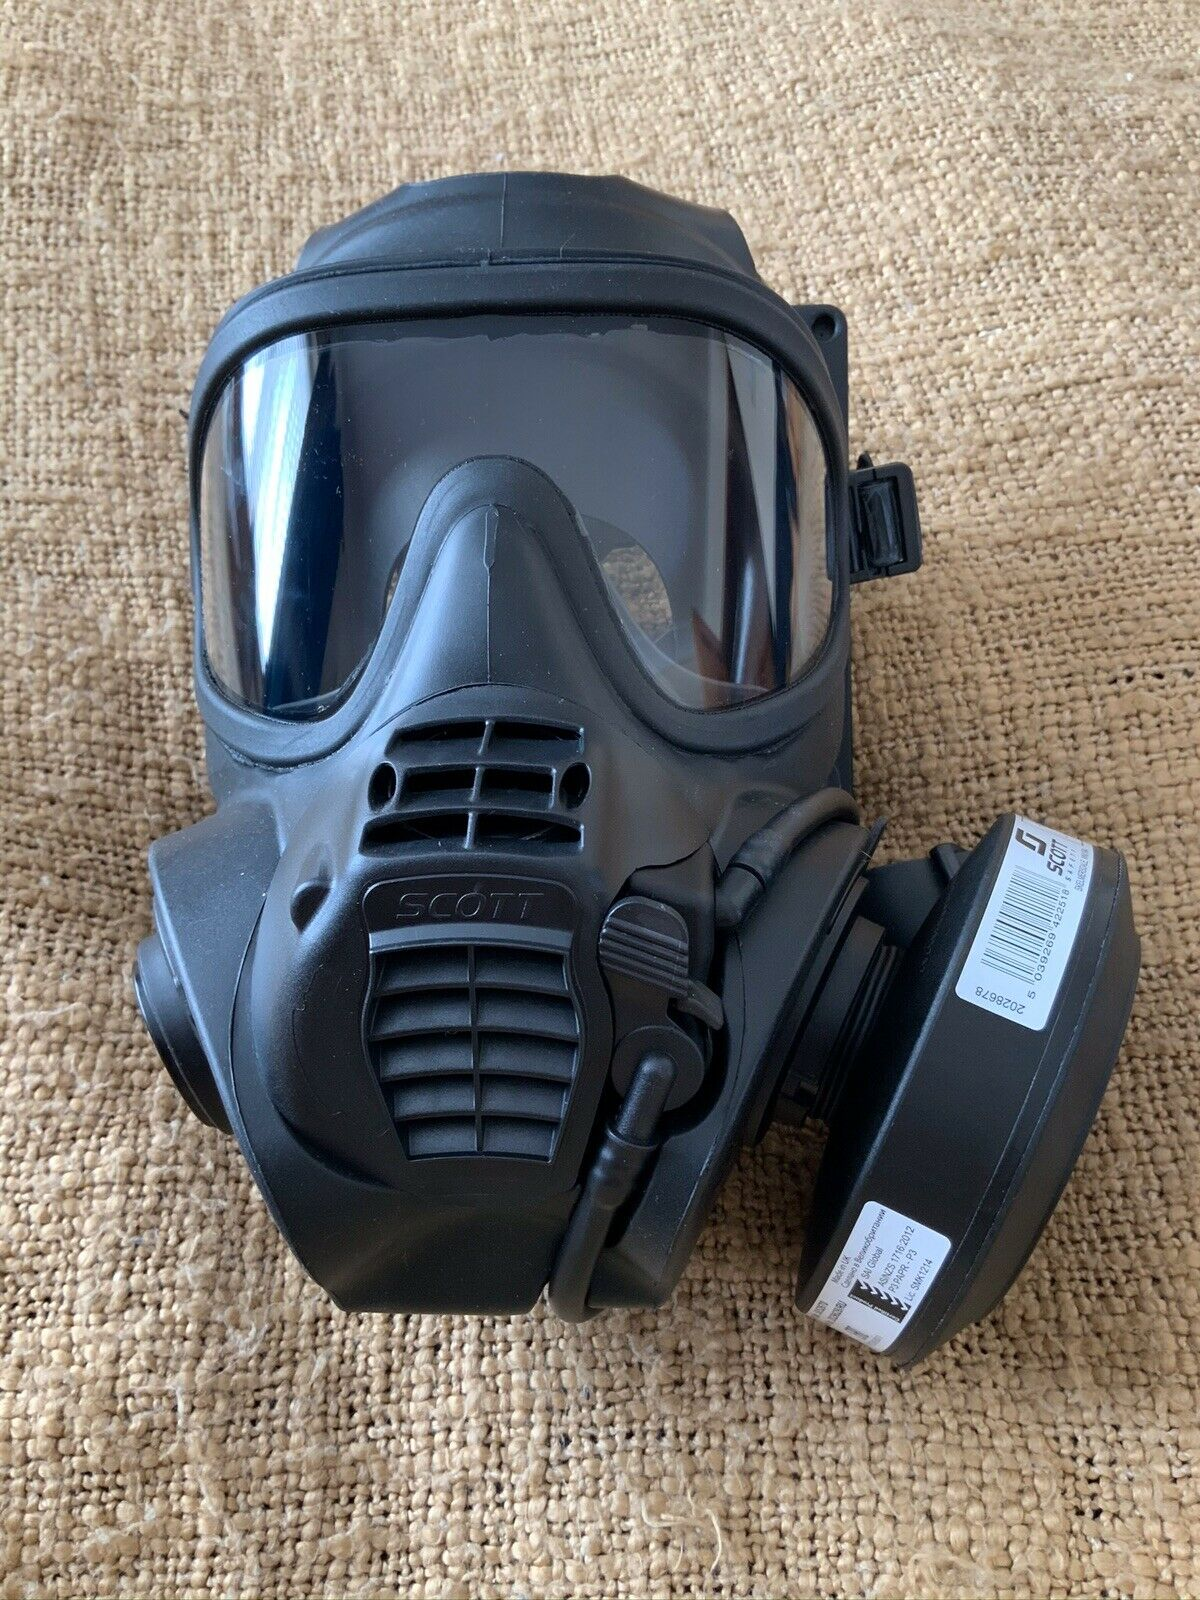 New 3M Scott FRR Full Face Respirator Size 2 or 3 +Two New P3 Filters 2030